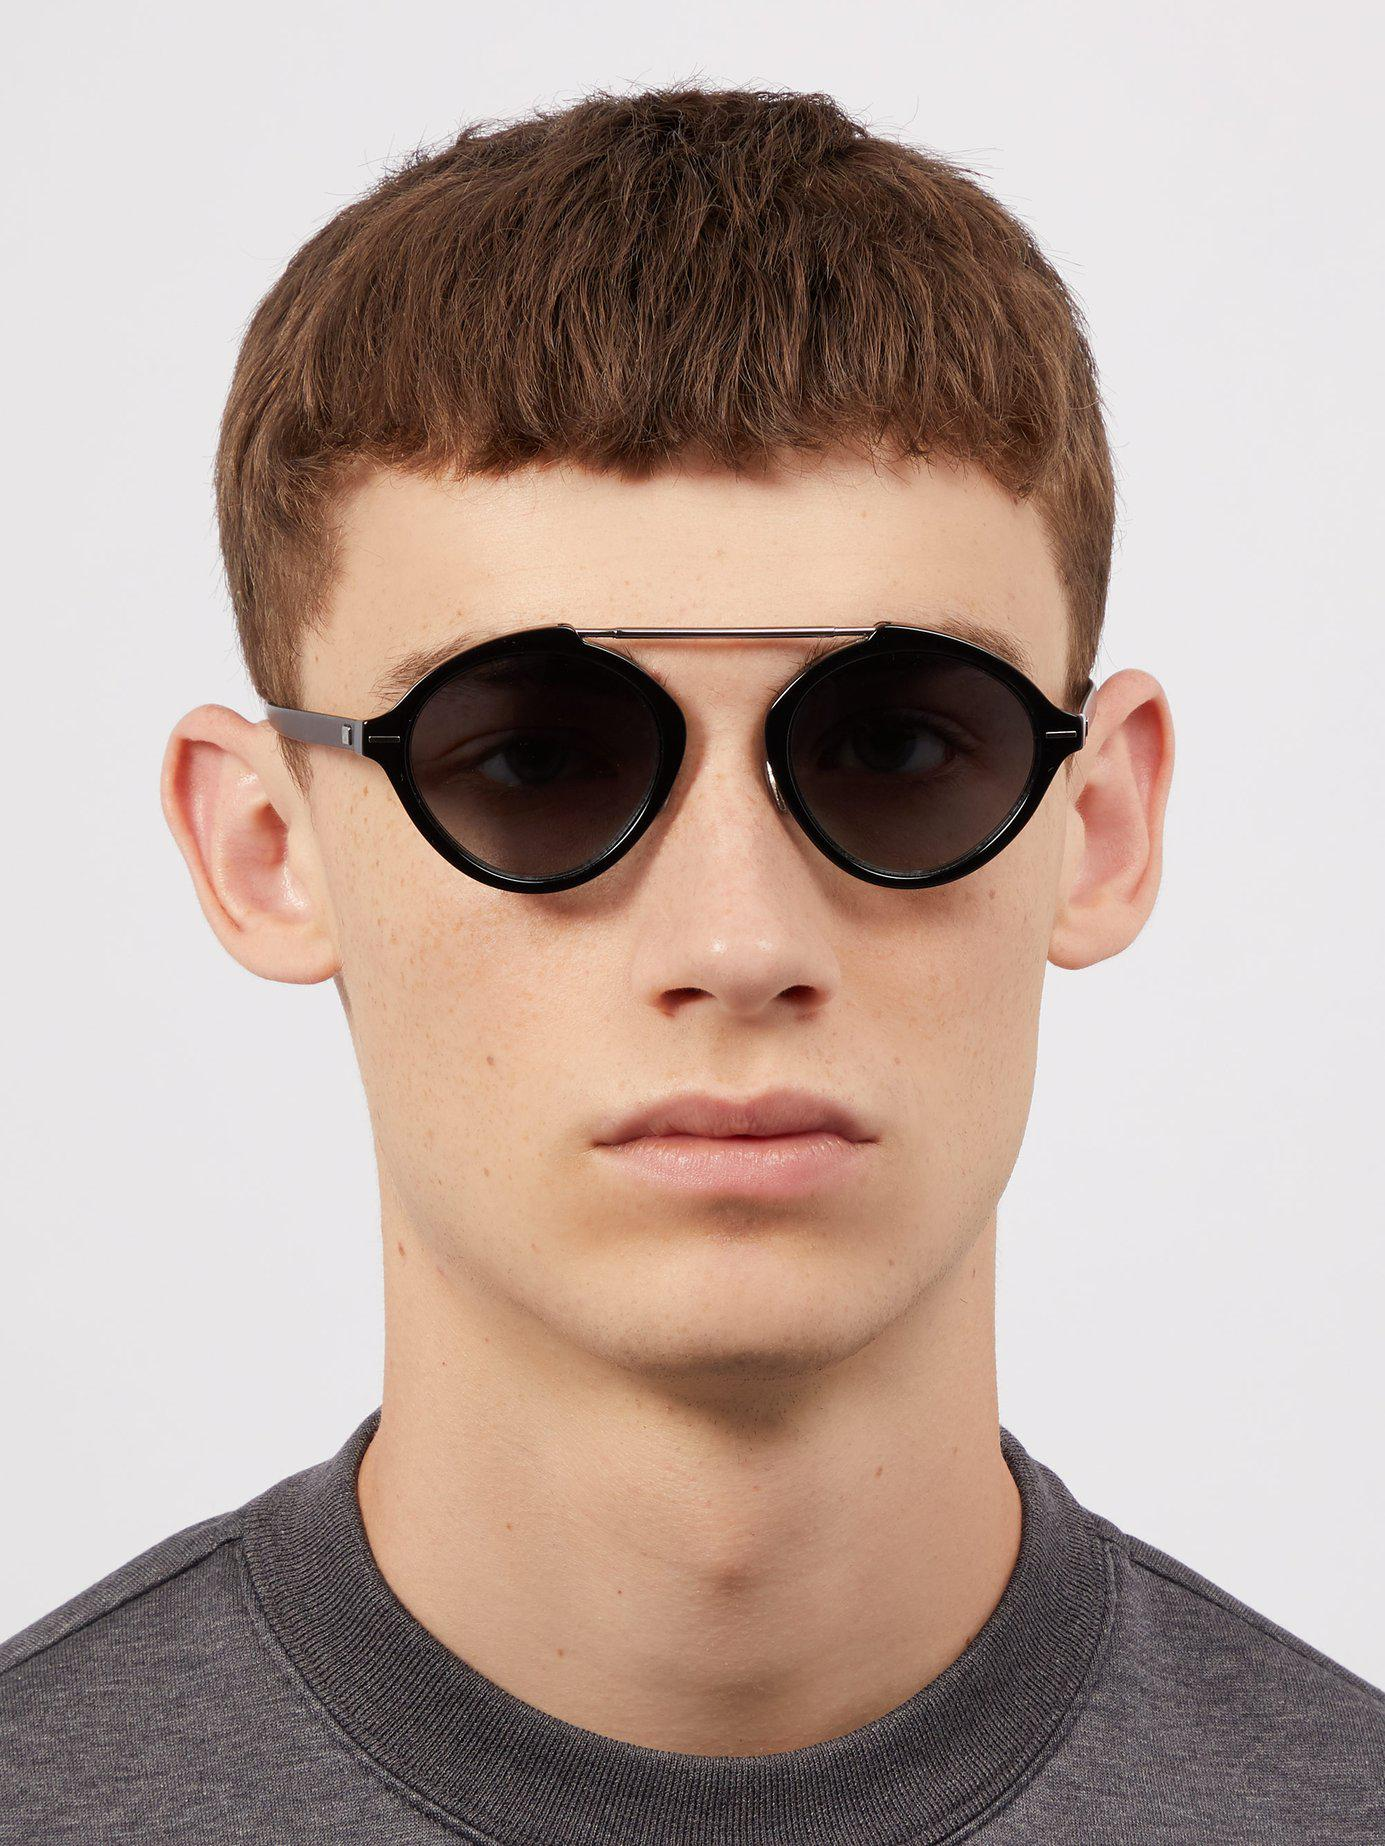 47f313589ad91 Dior Homme System Round Frame Sunglasses in Black for Men - Lyst